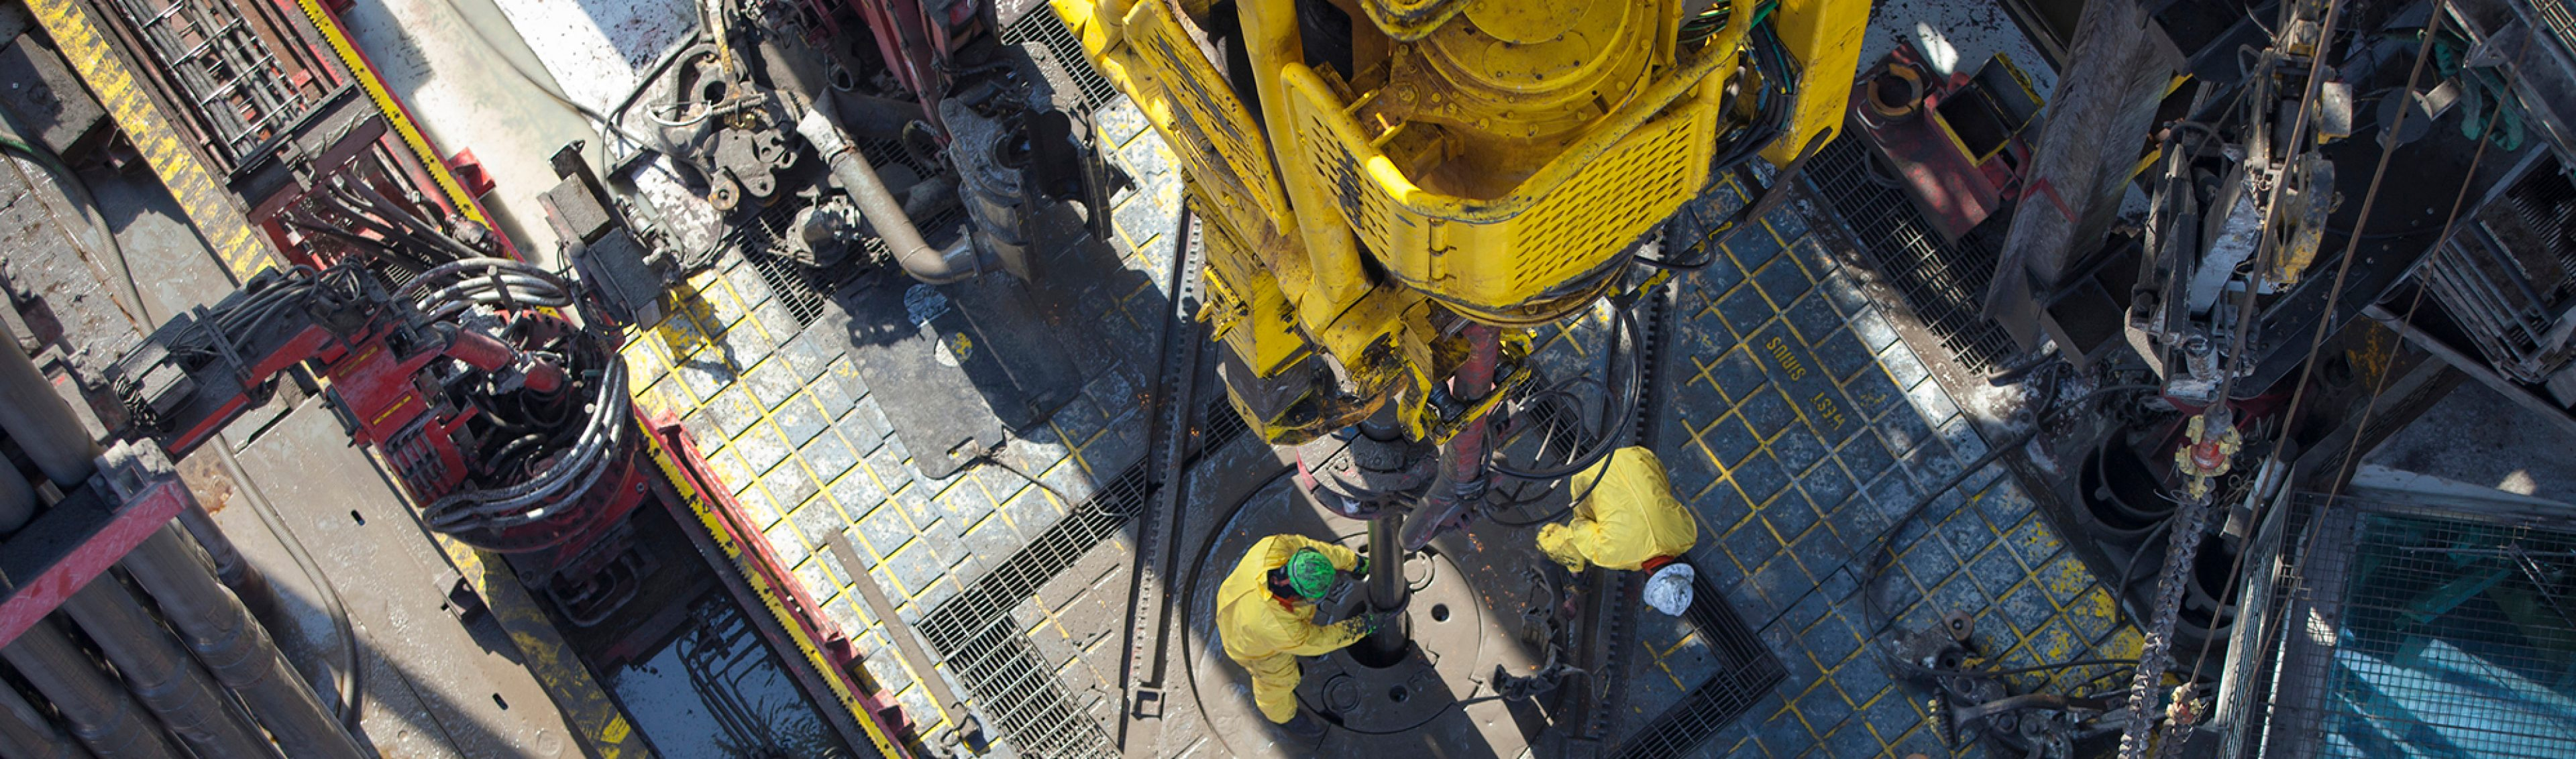 Birds eye view of drillers working on the rig floor as seen from the crown of the derrick, on Seadrill's West Sirius drilling rig in the Gulf of Mexico.